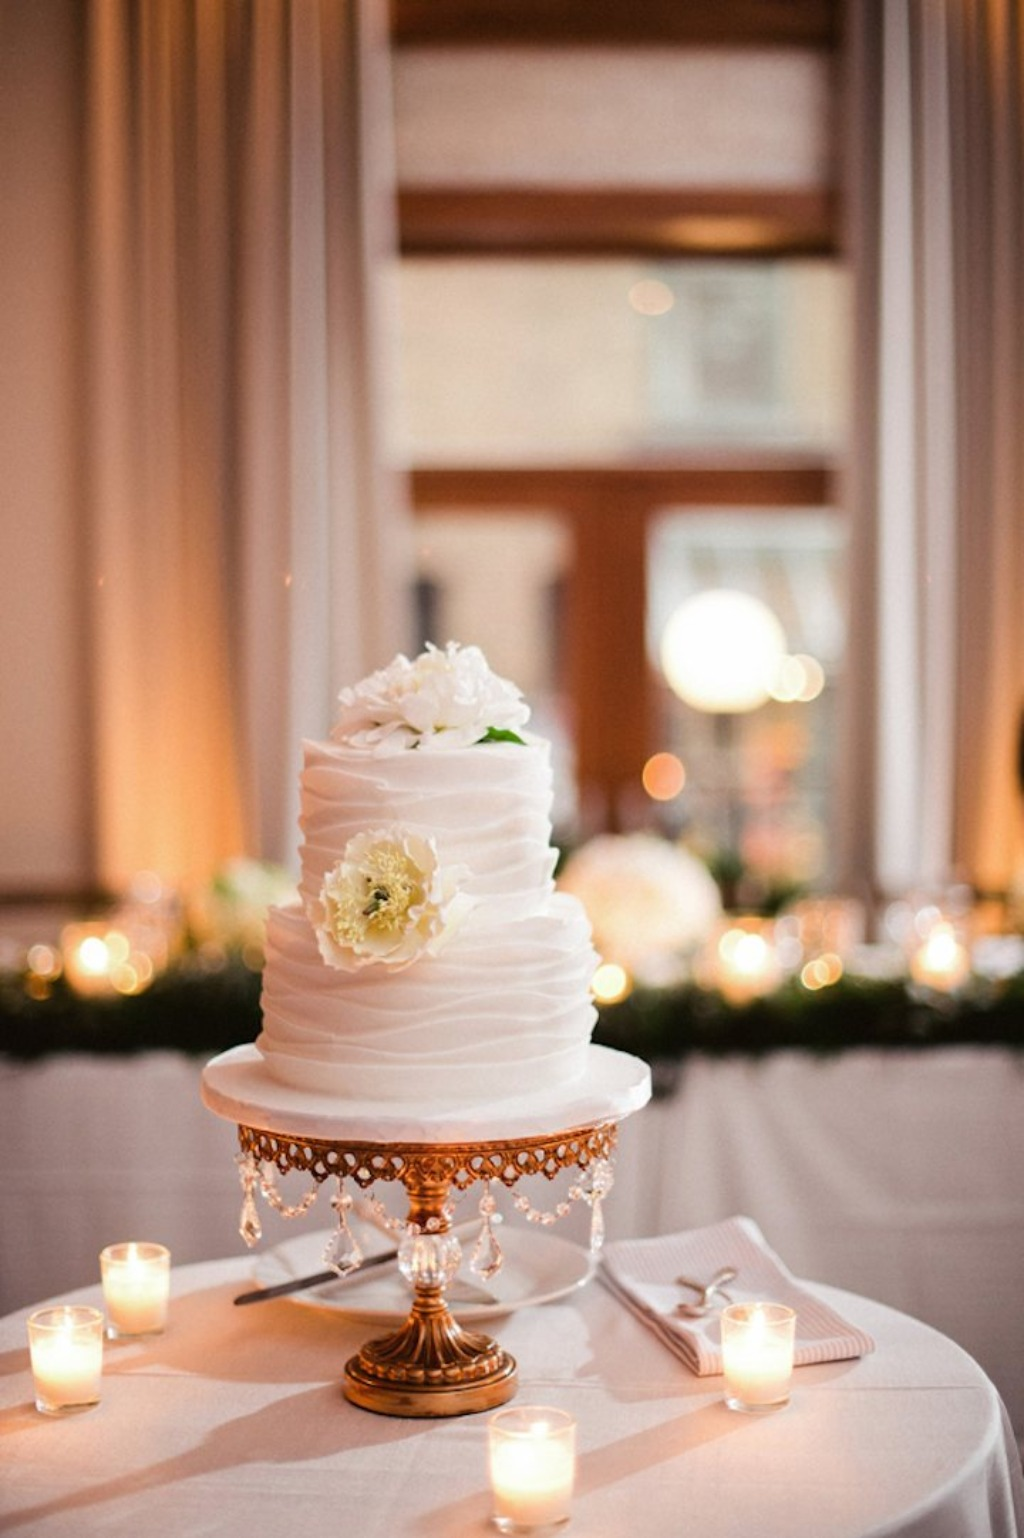 Opulent Treasures Cake Stands will spotlight your sweet celebration! We offer a gorgeous selection of cake stands, dessert stands,